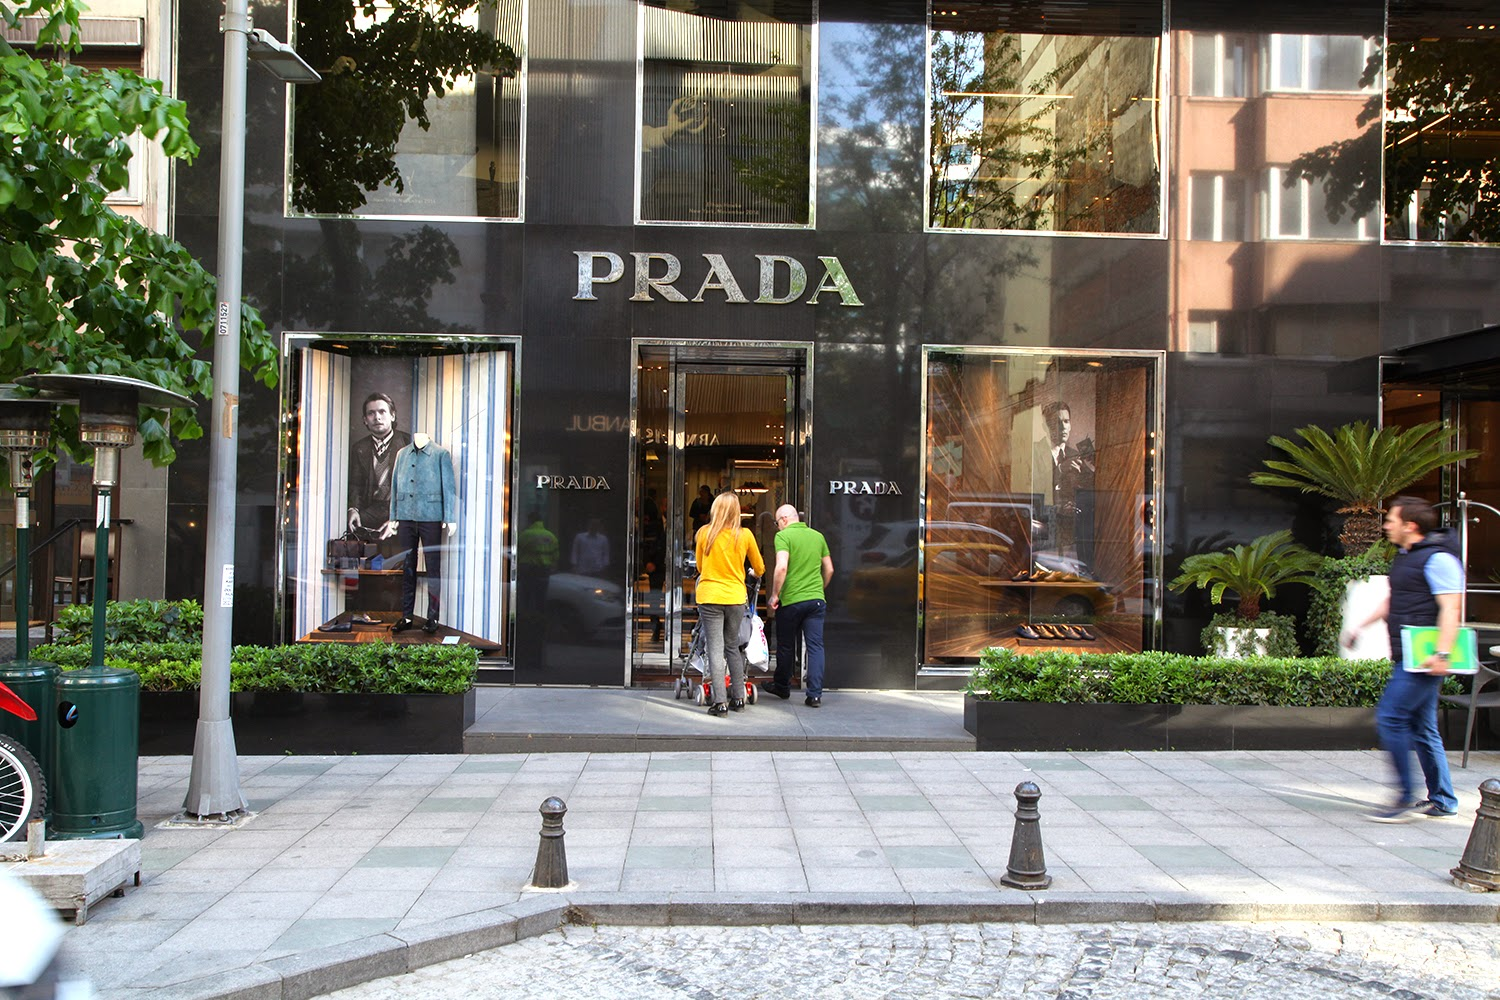 prada in nisantasi